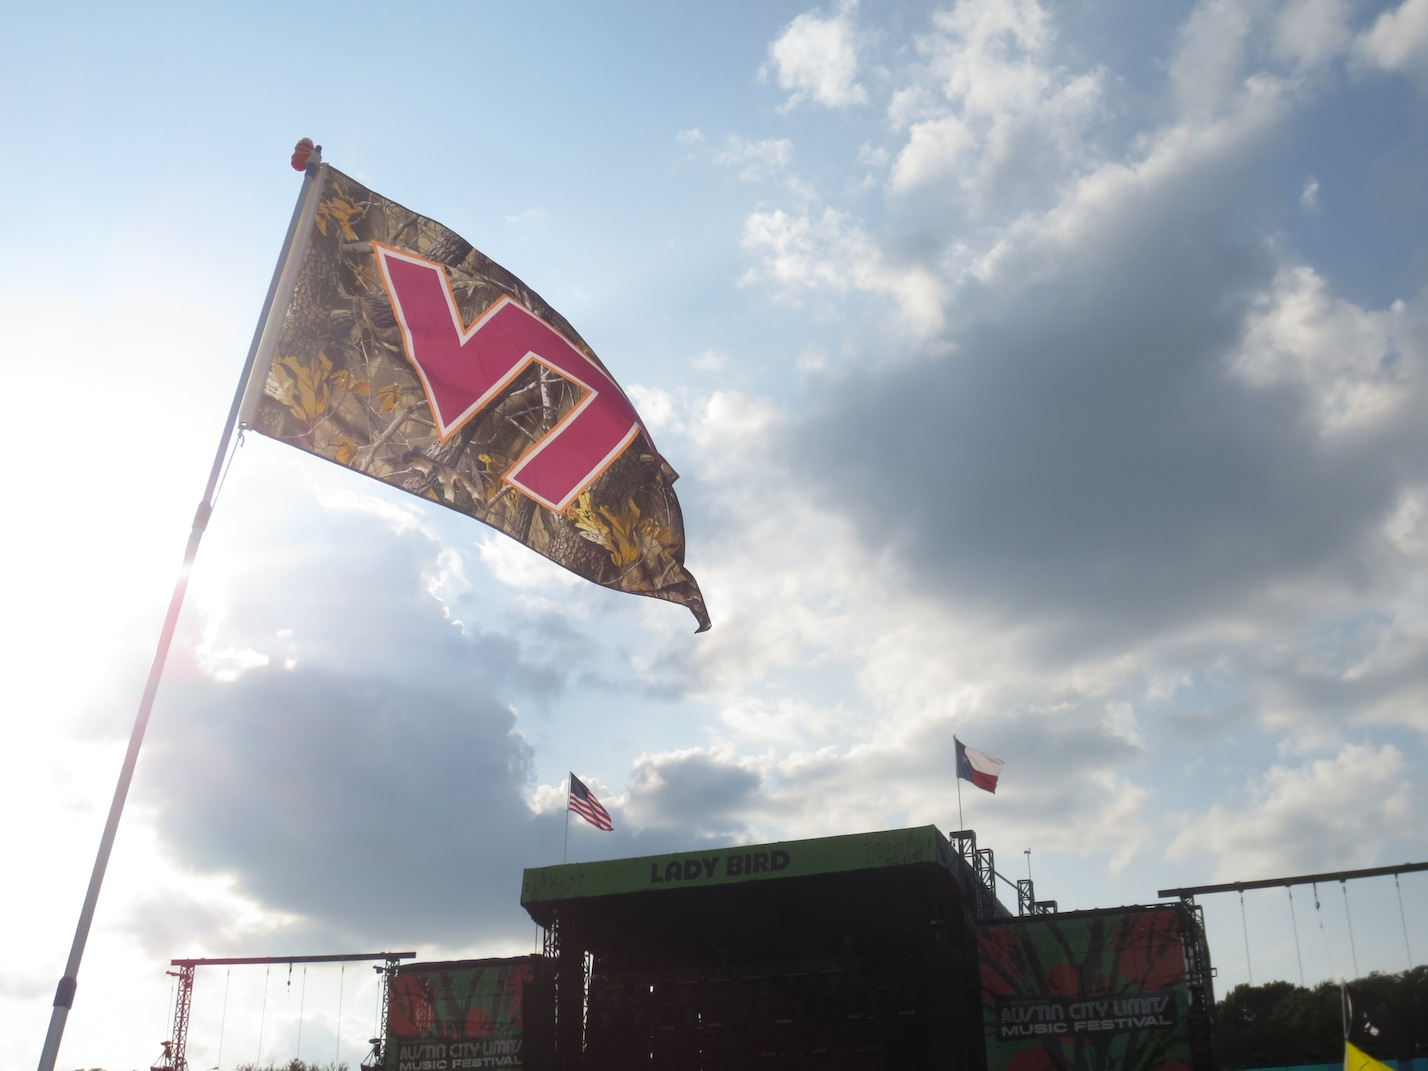 Virginia Tech flag blowing in the wind.